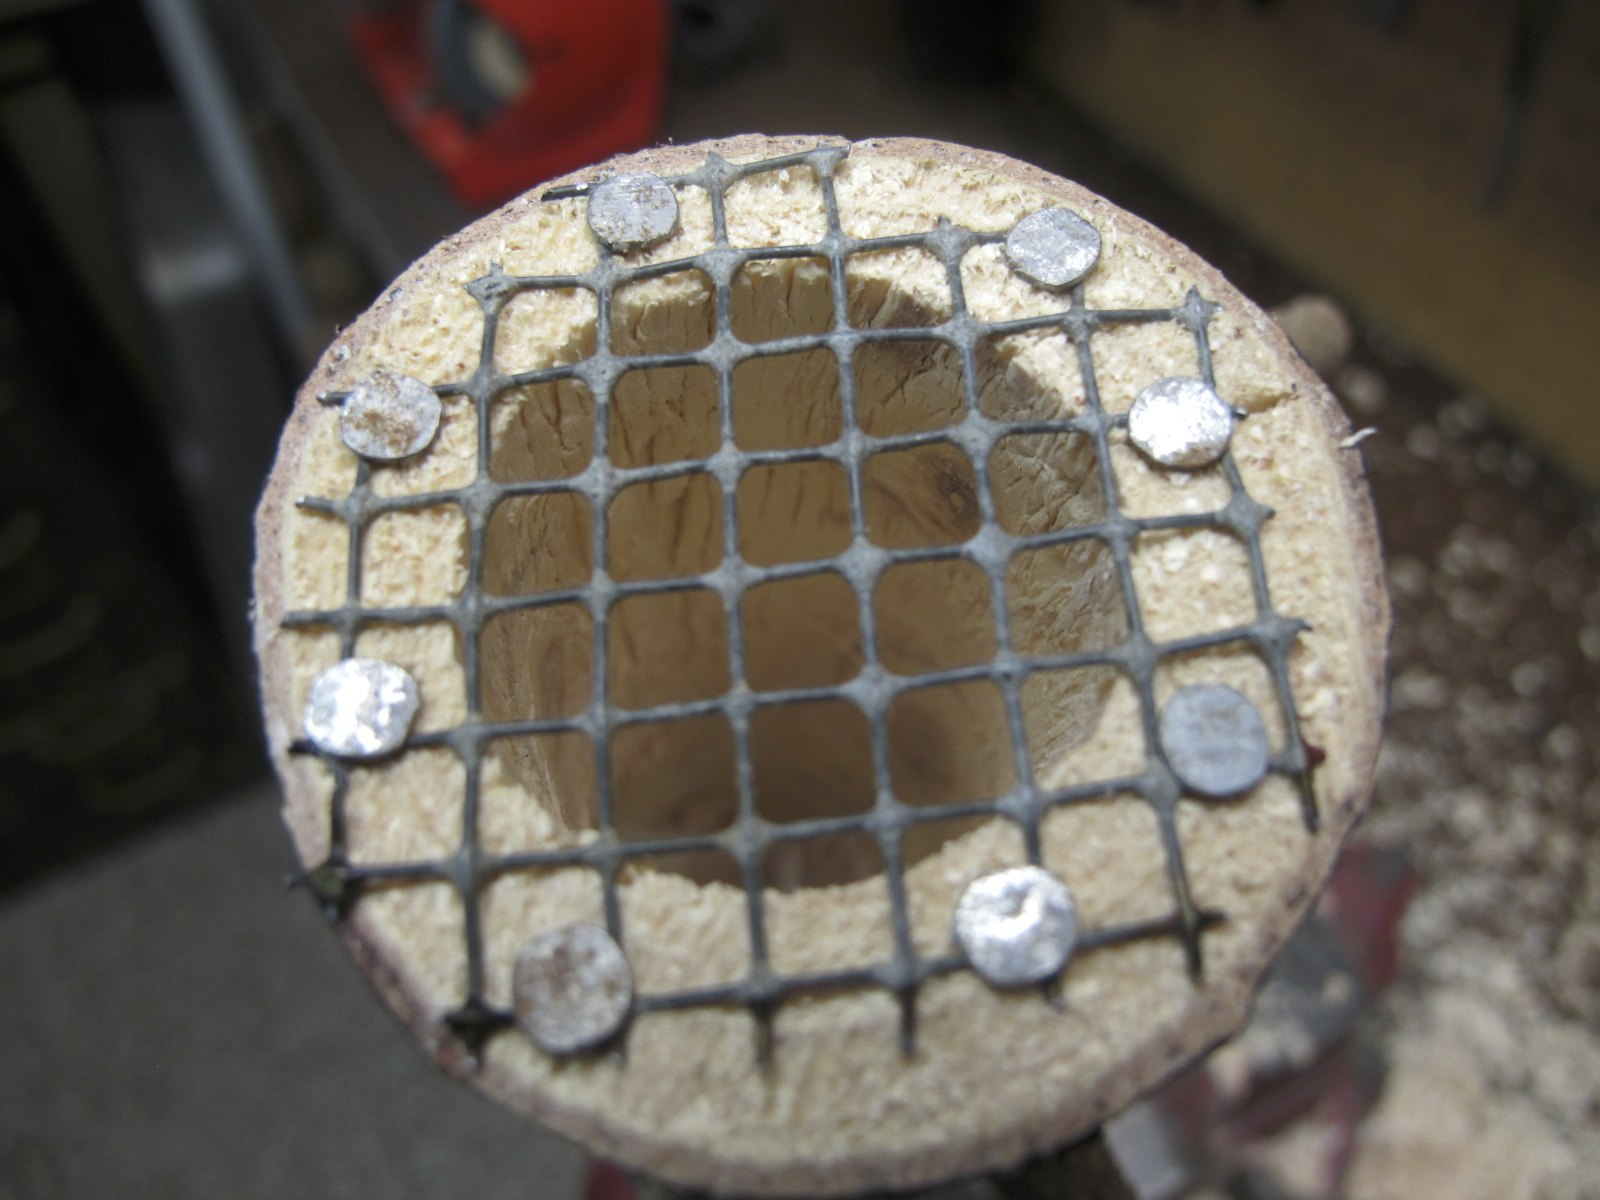 Attach wire mesh bottom using small broad headed nails or tacts to secure into place.